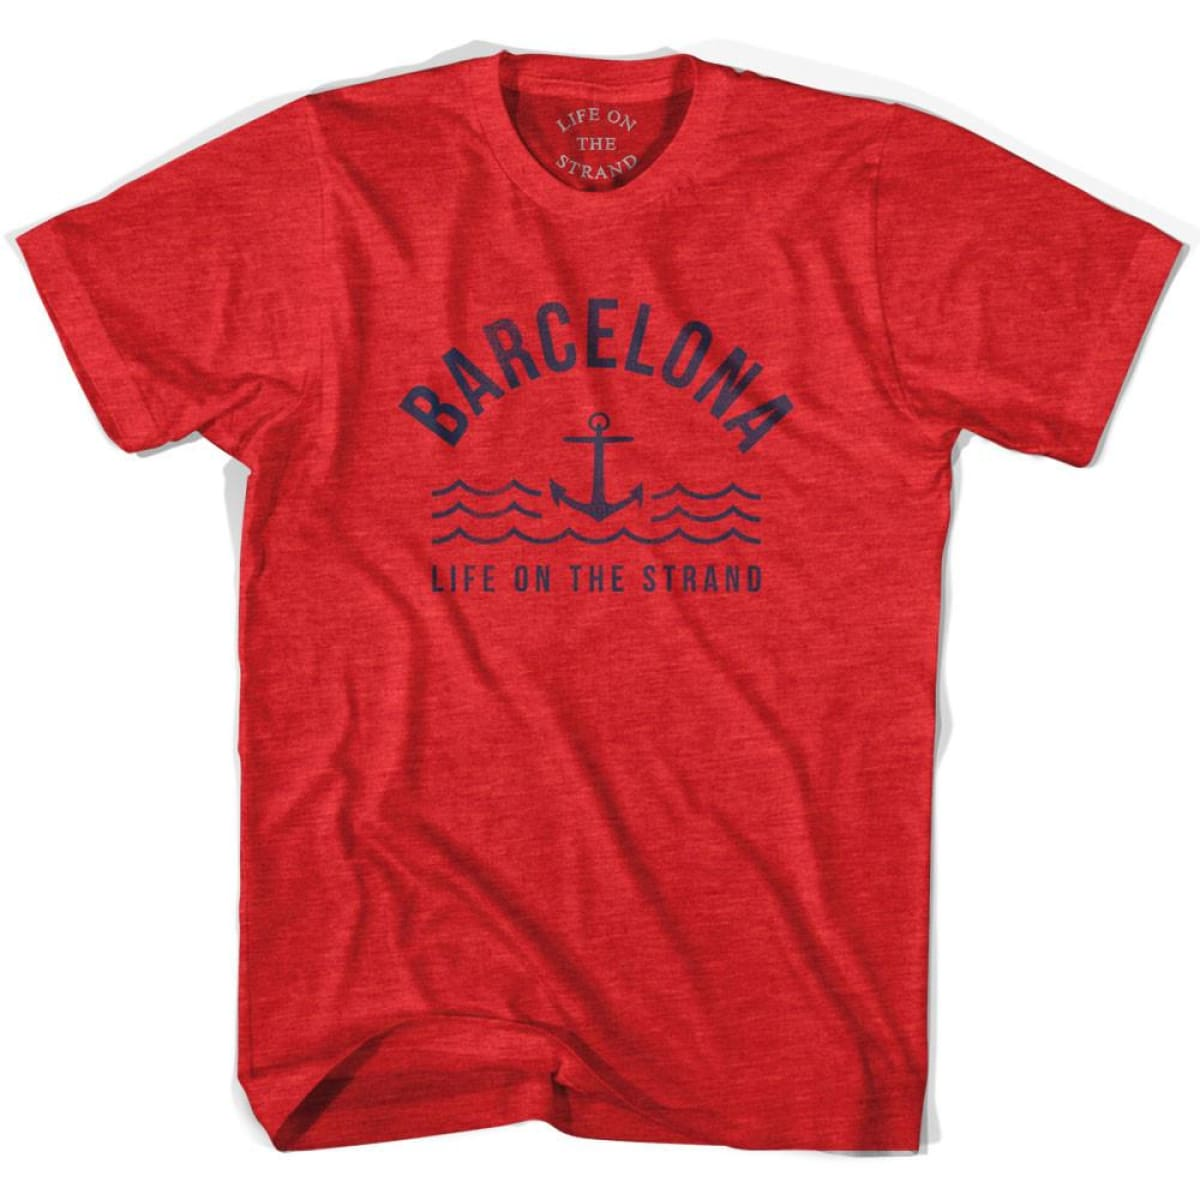 Barcelona Anchor Life on the Strand T-shirt - Heather Red / Adult Small - Life on the Strand Anchor